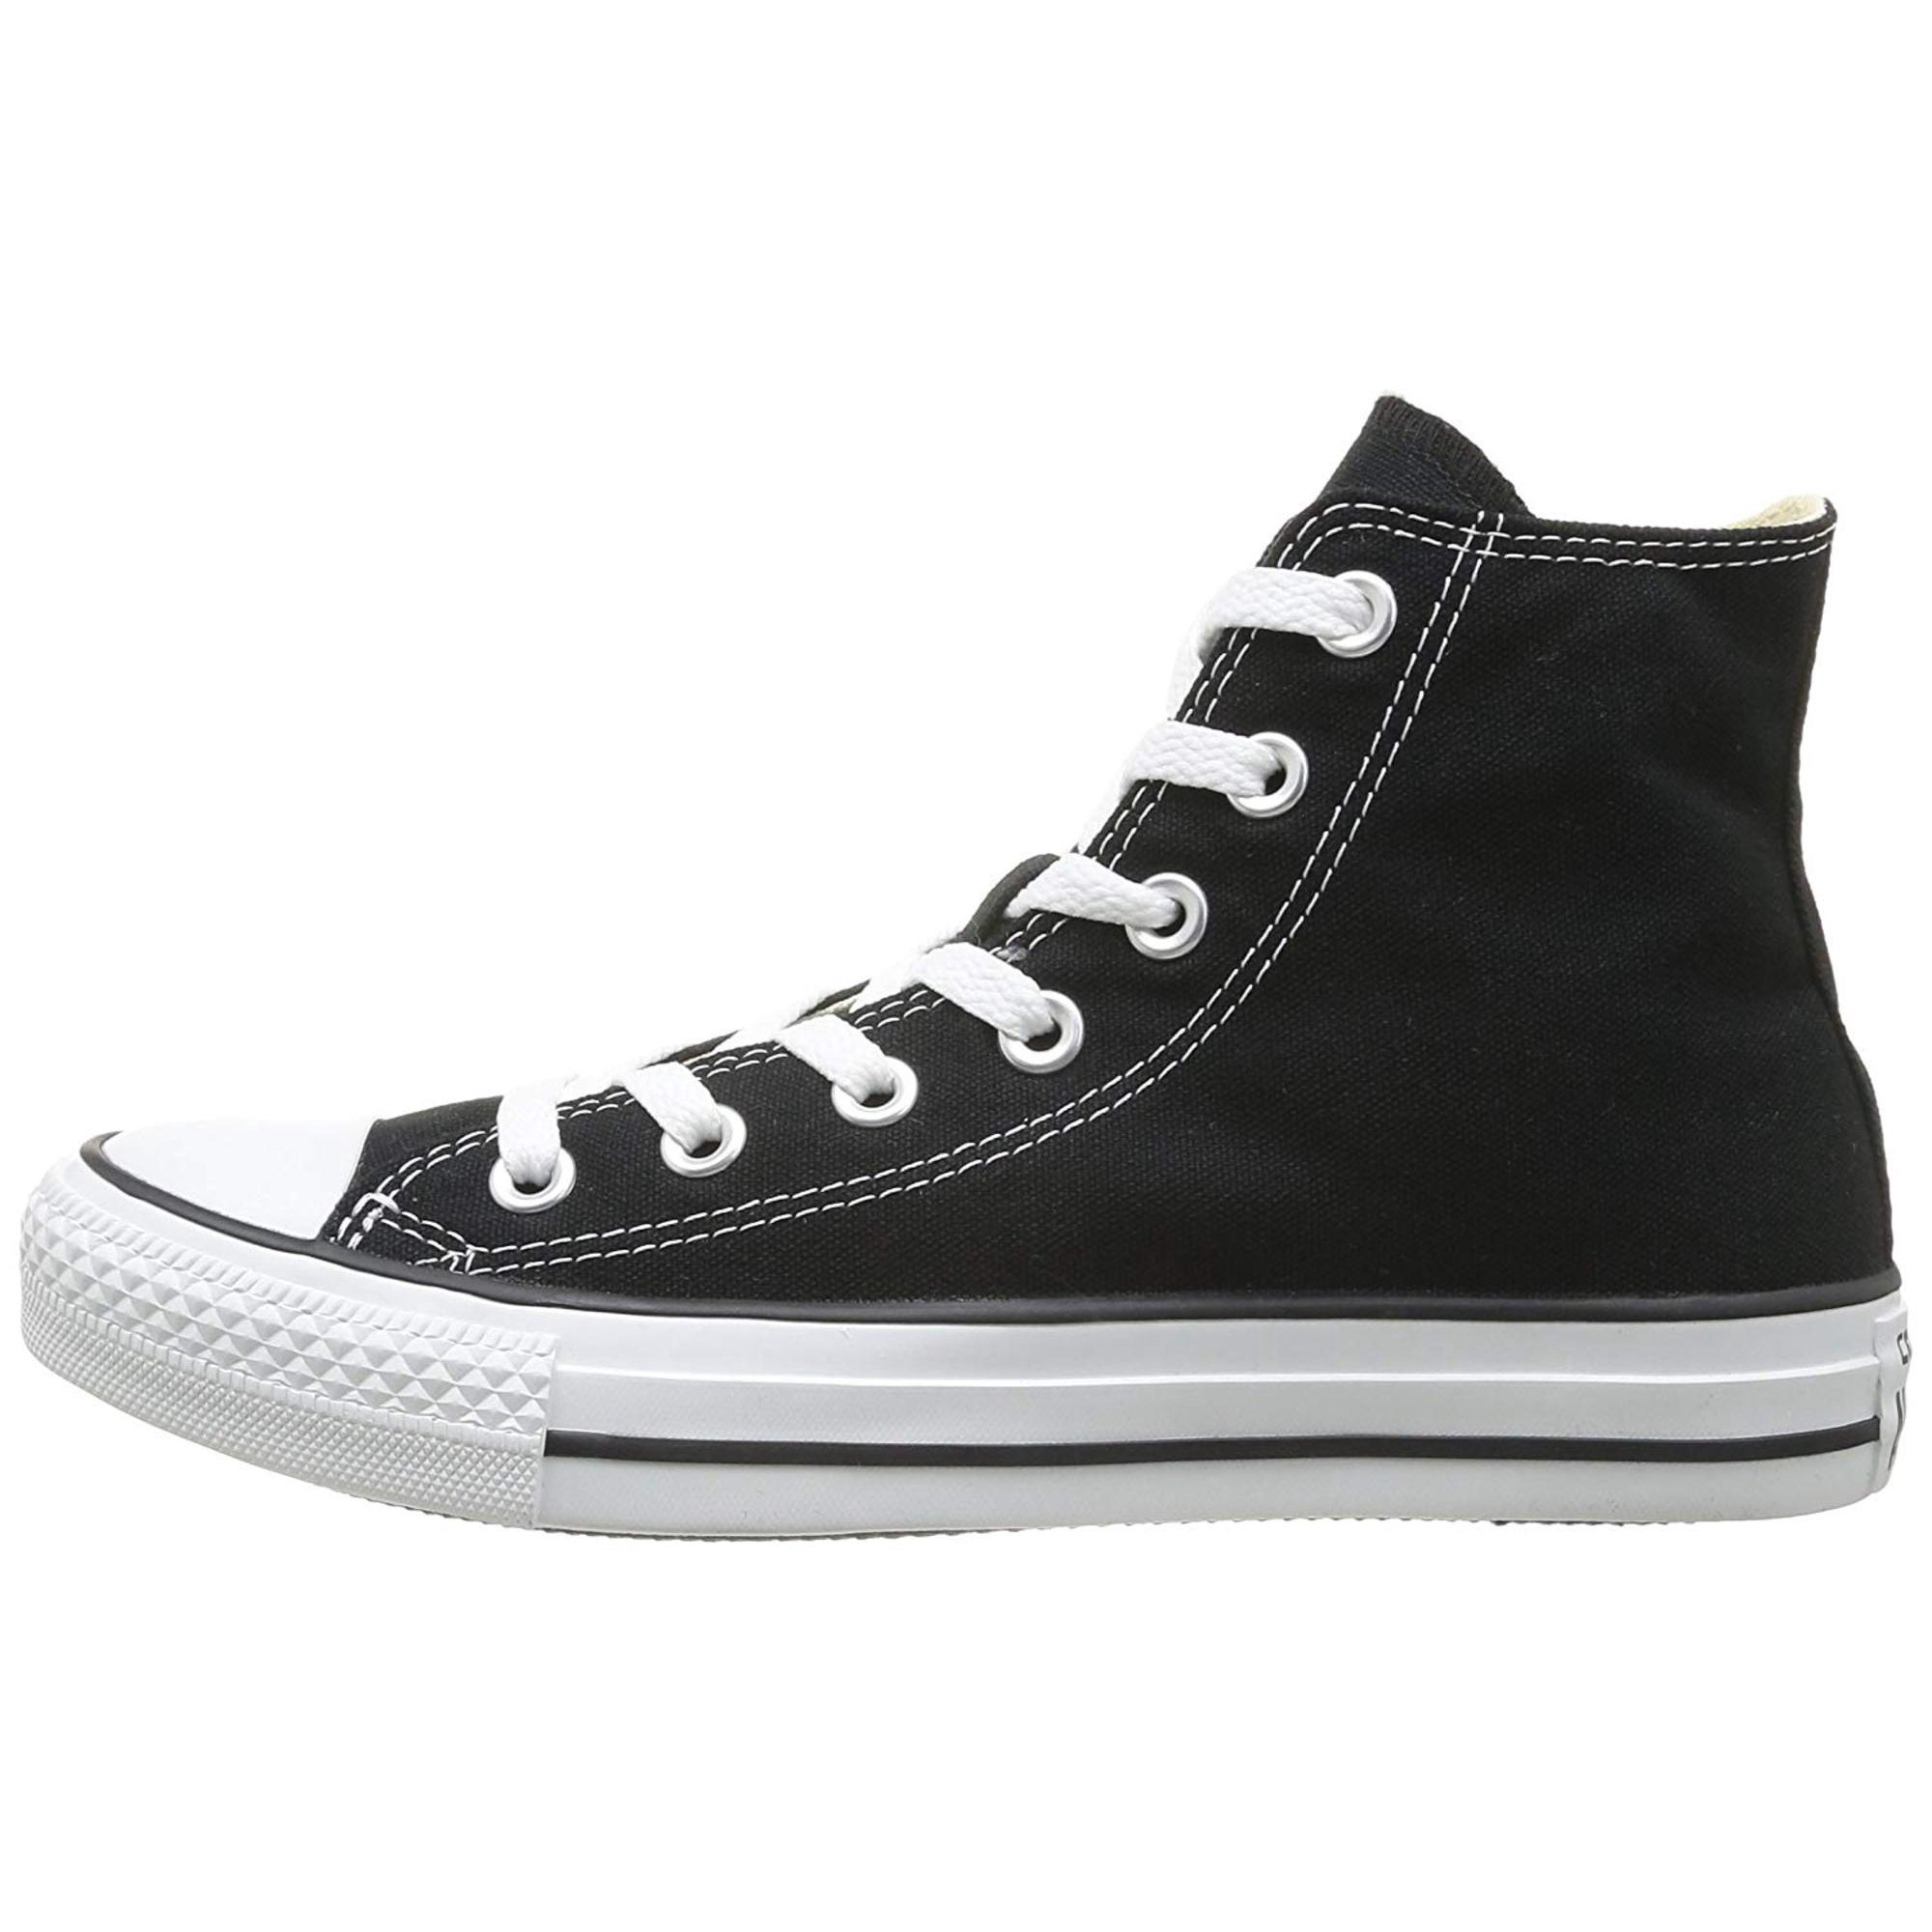 115ee2911baa Converse Womens All Star High Canvas Hight Top Lace Up Fashion ...